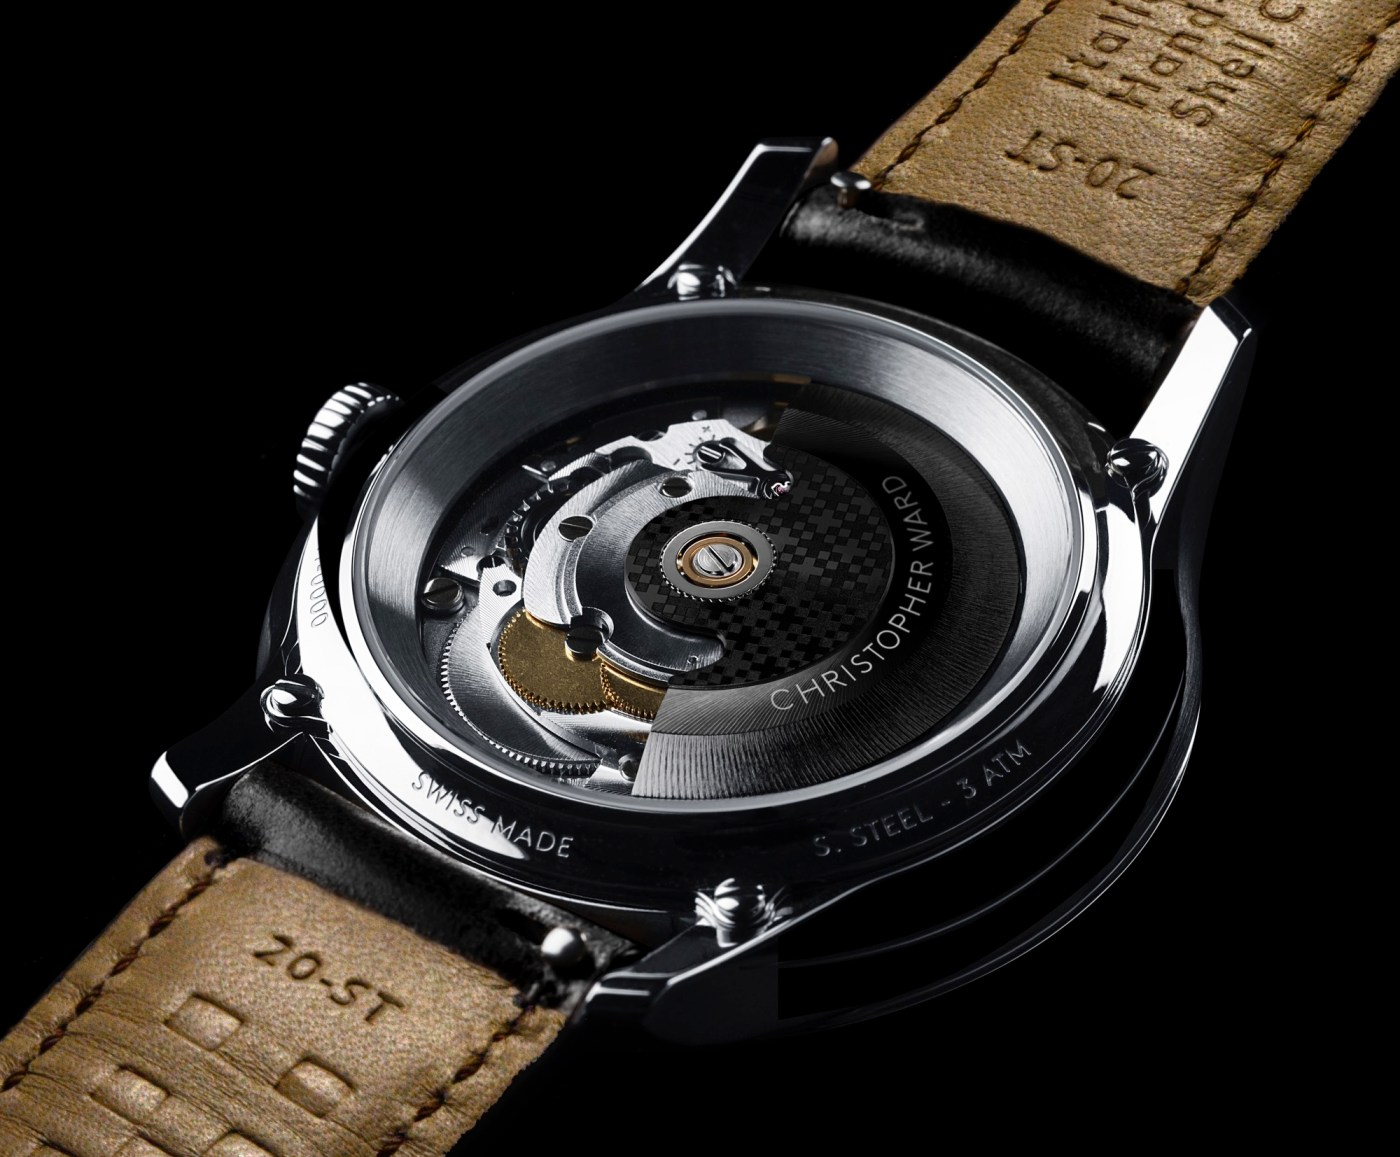 Christopher Ward C1 Moonglow caseback